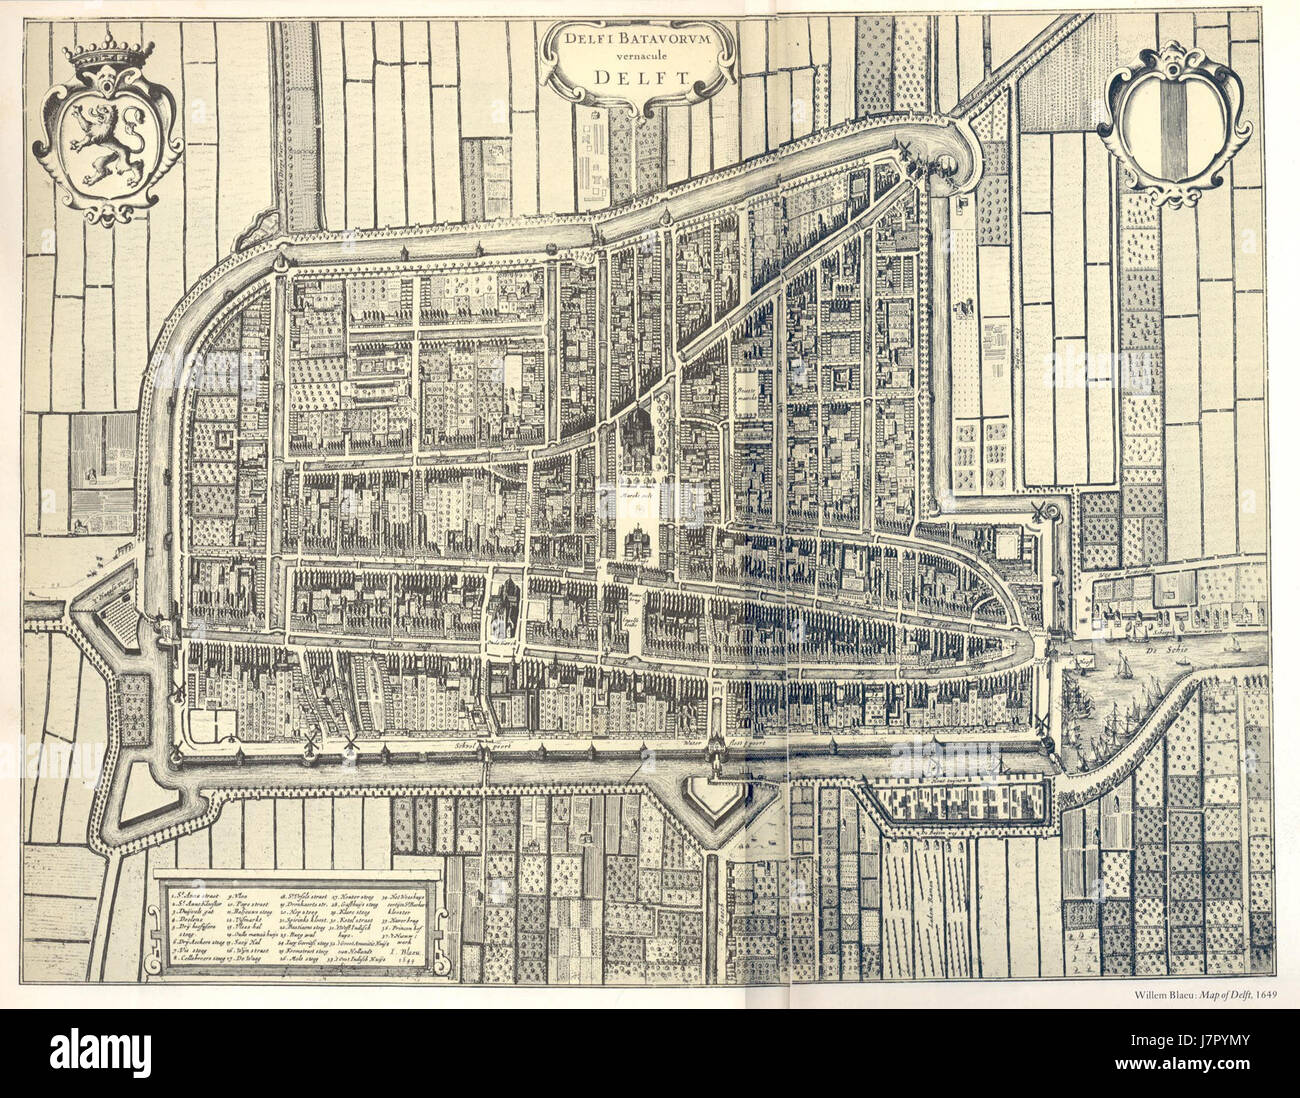 Delft map willem blaeu Stock Photo Royalty Free Image 142490235